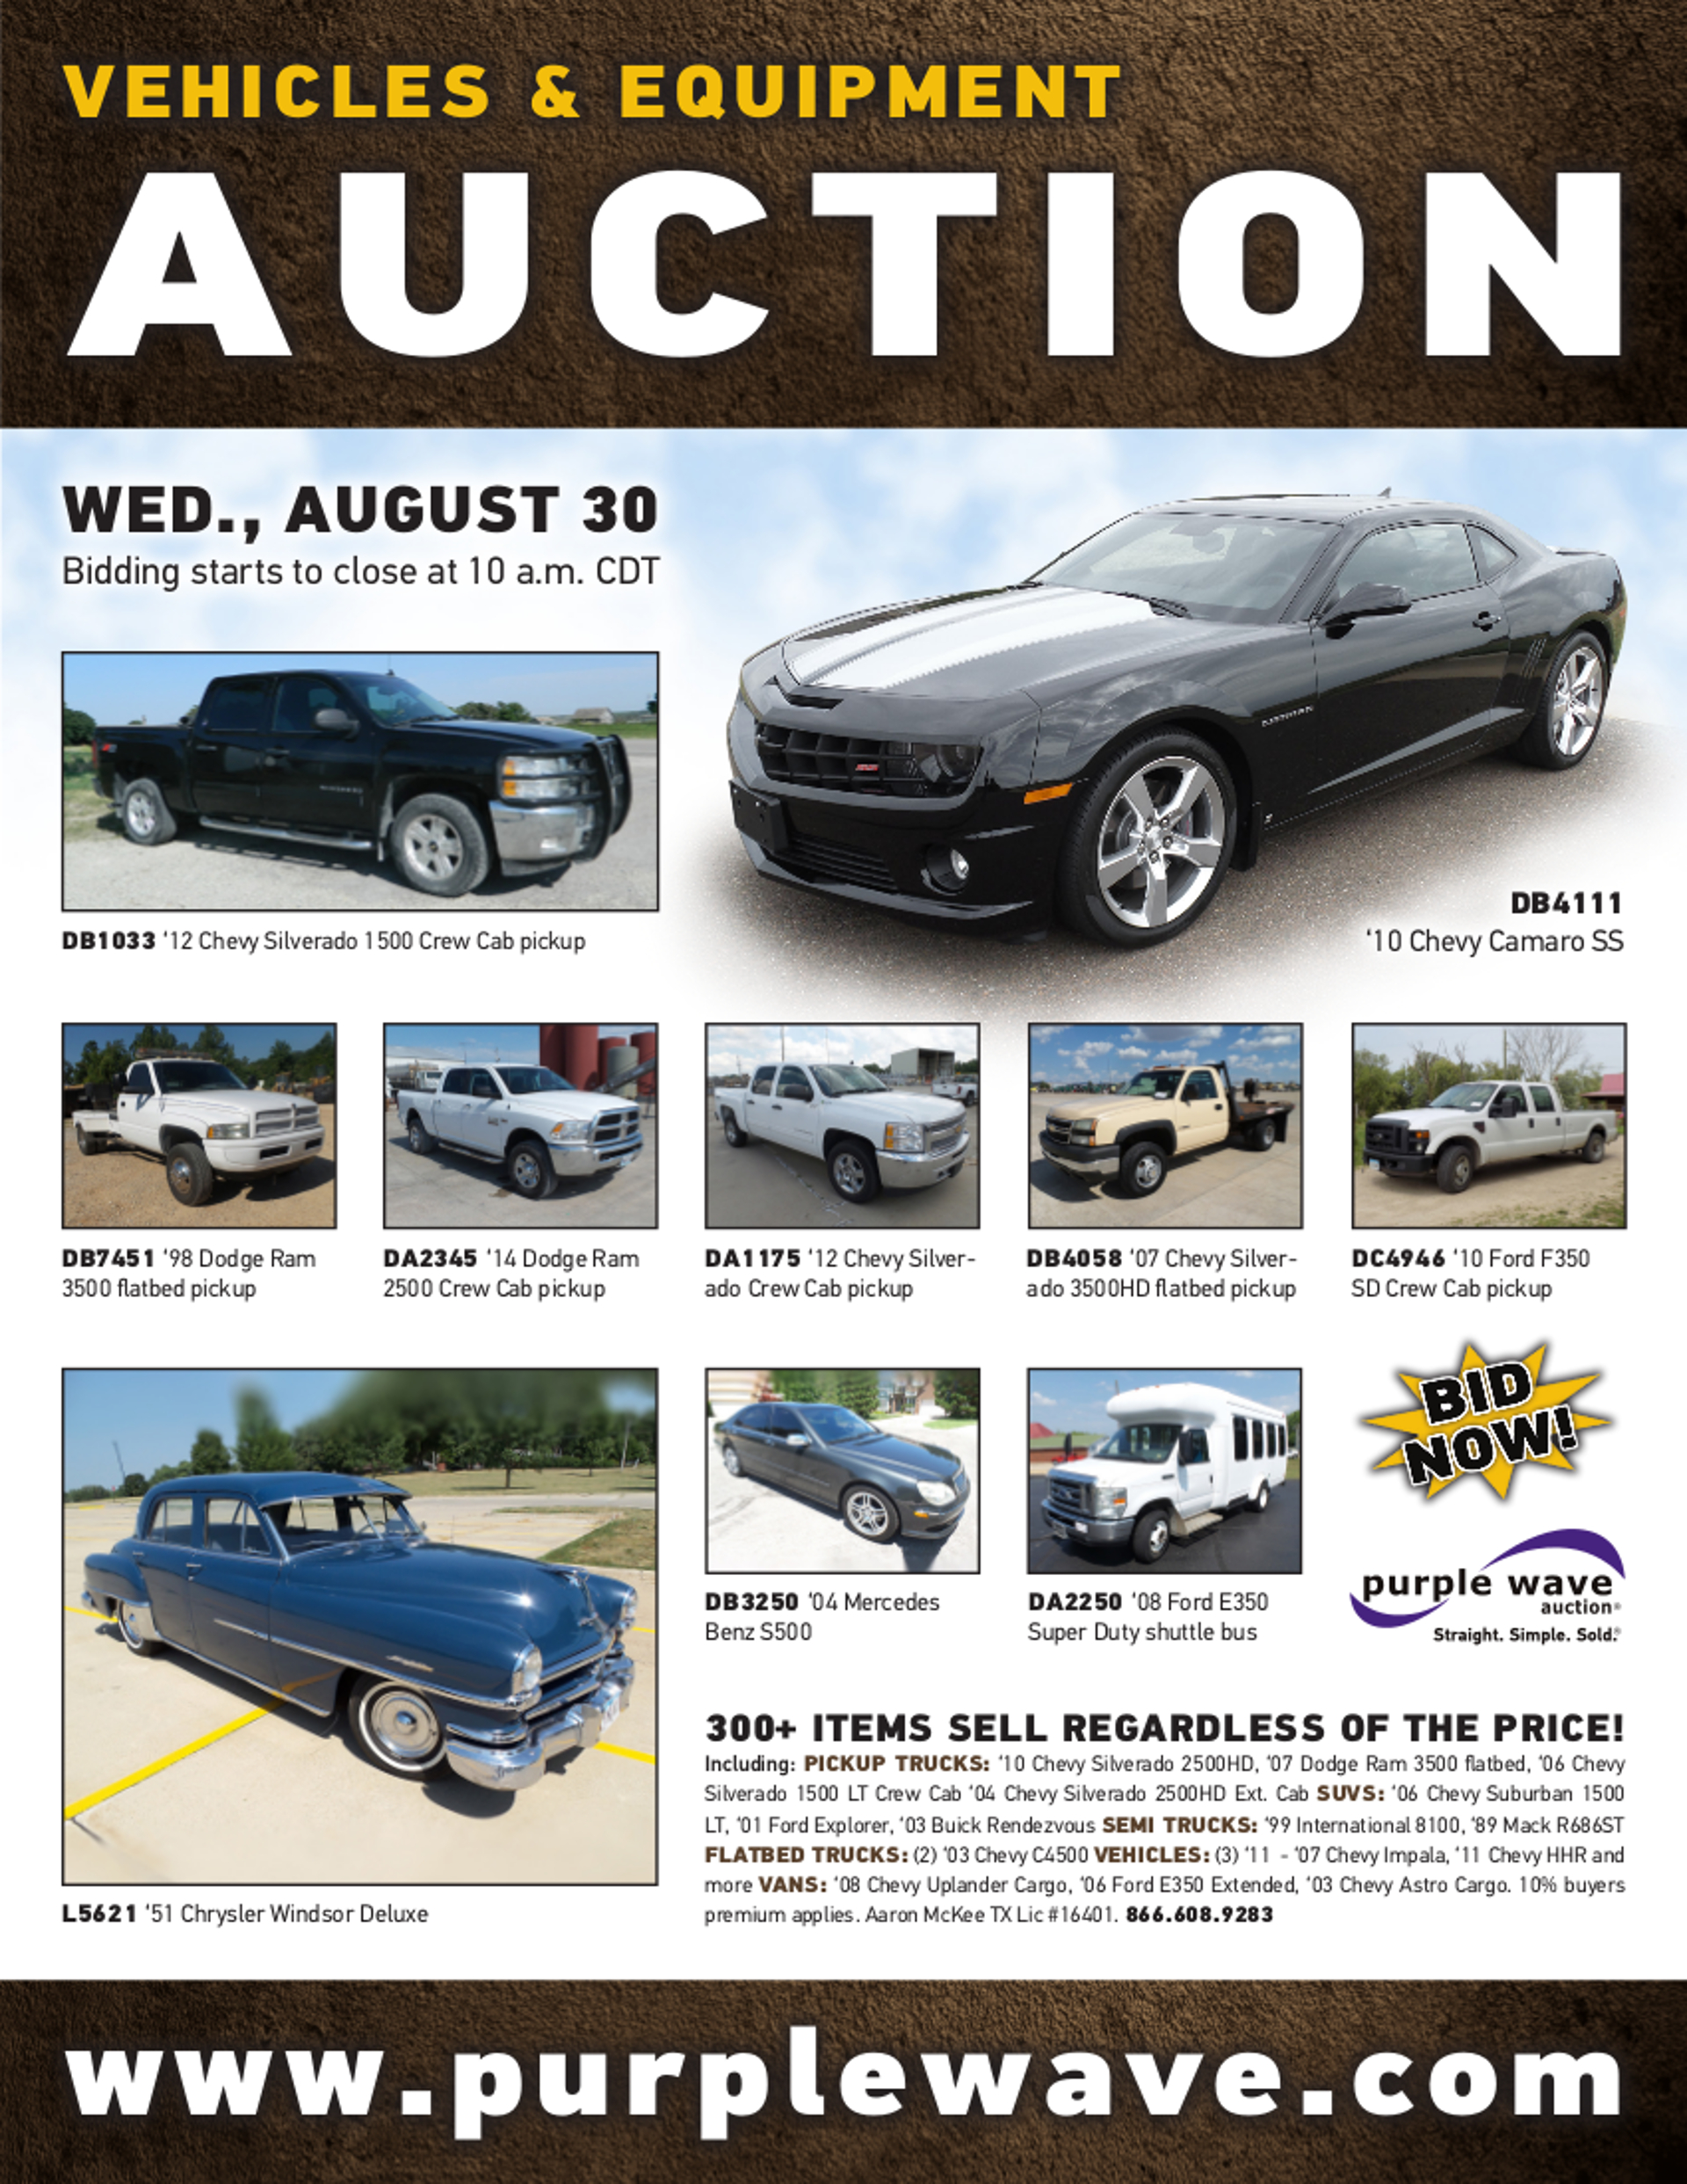 SOLD August 30 Vehicles and Equipment Auction